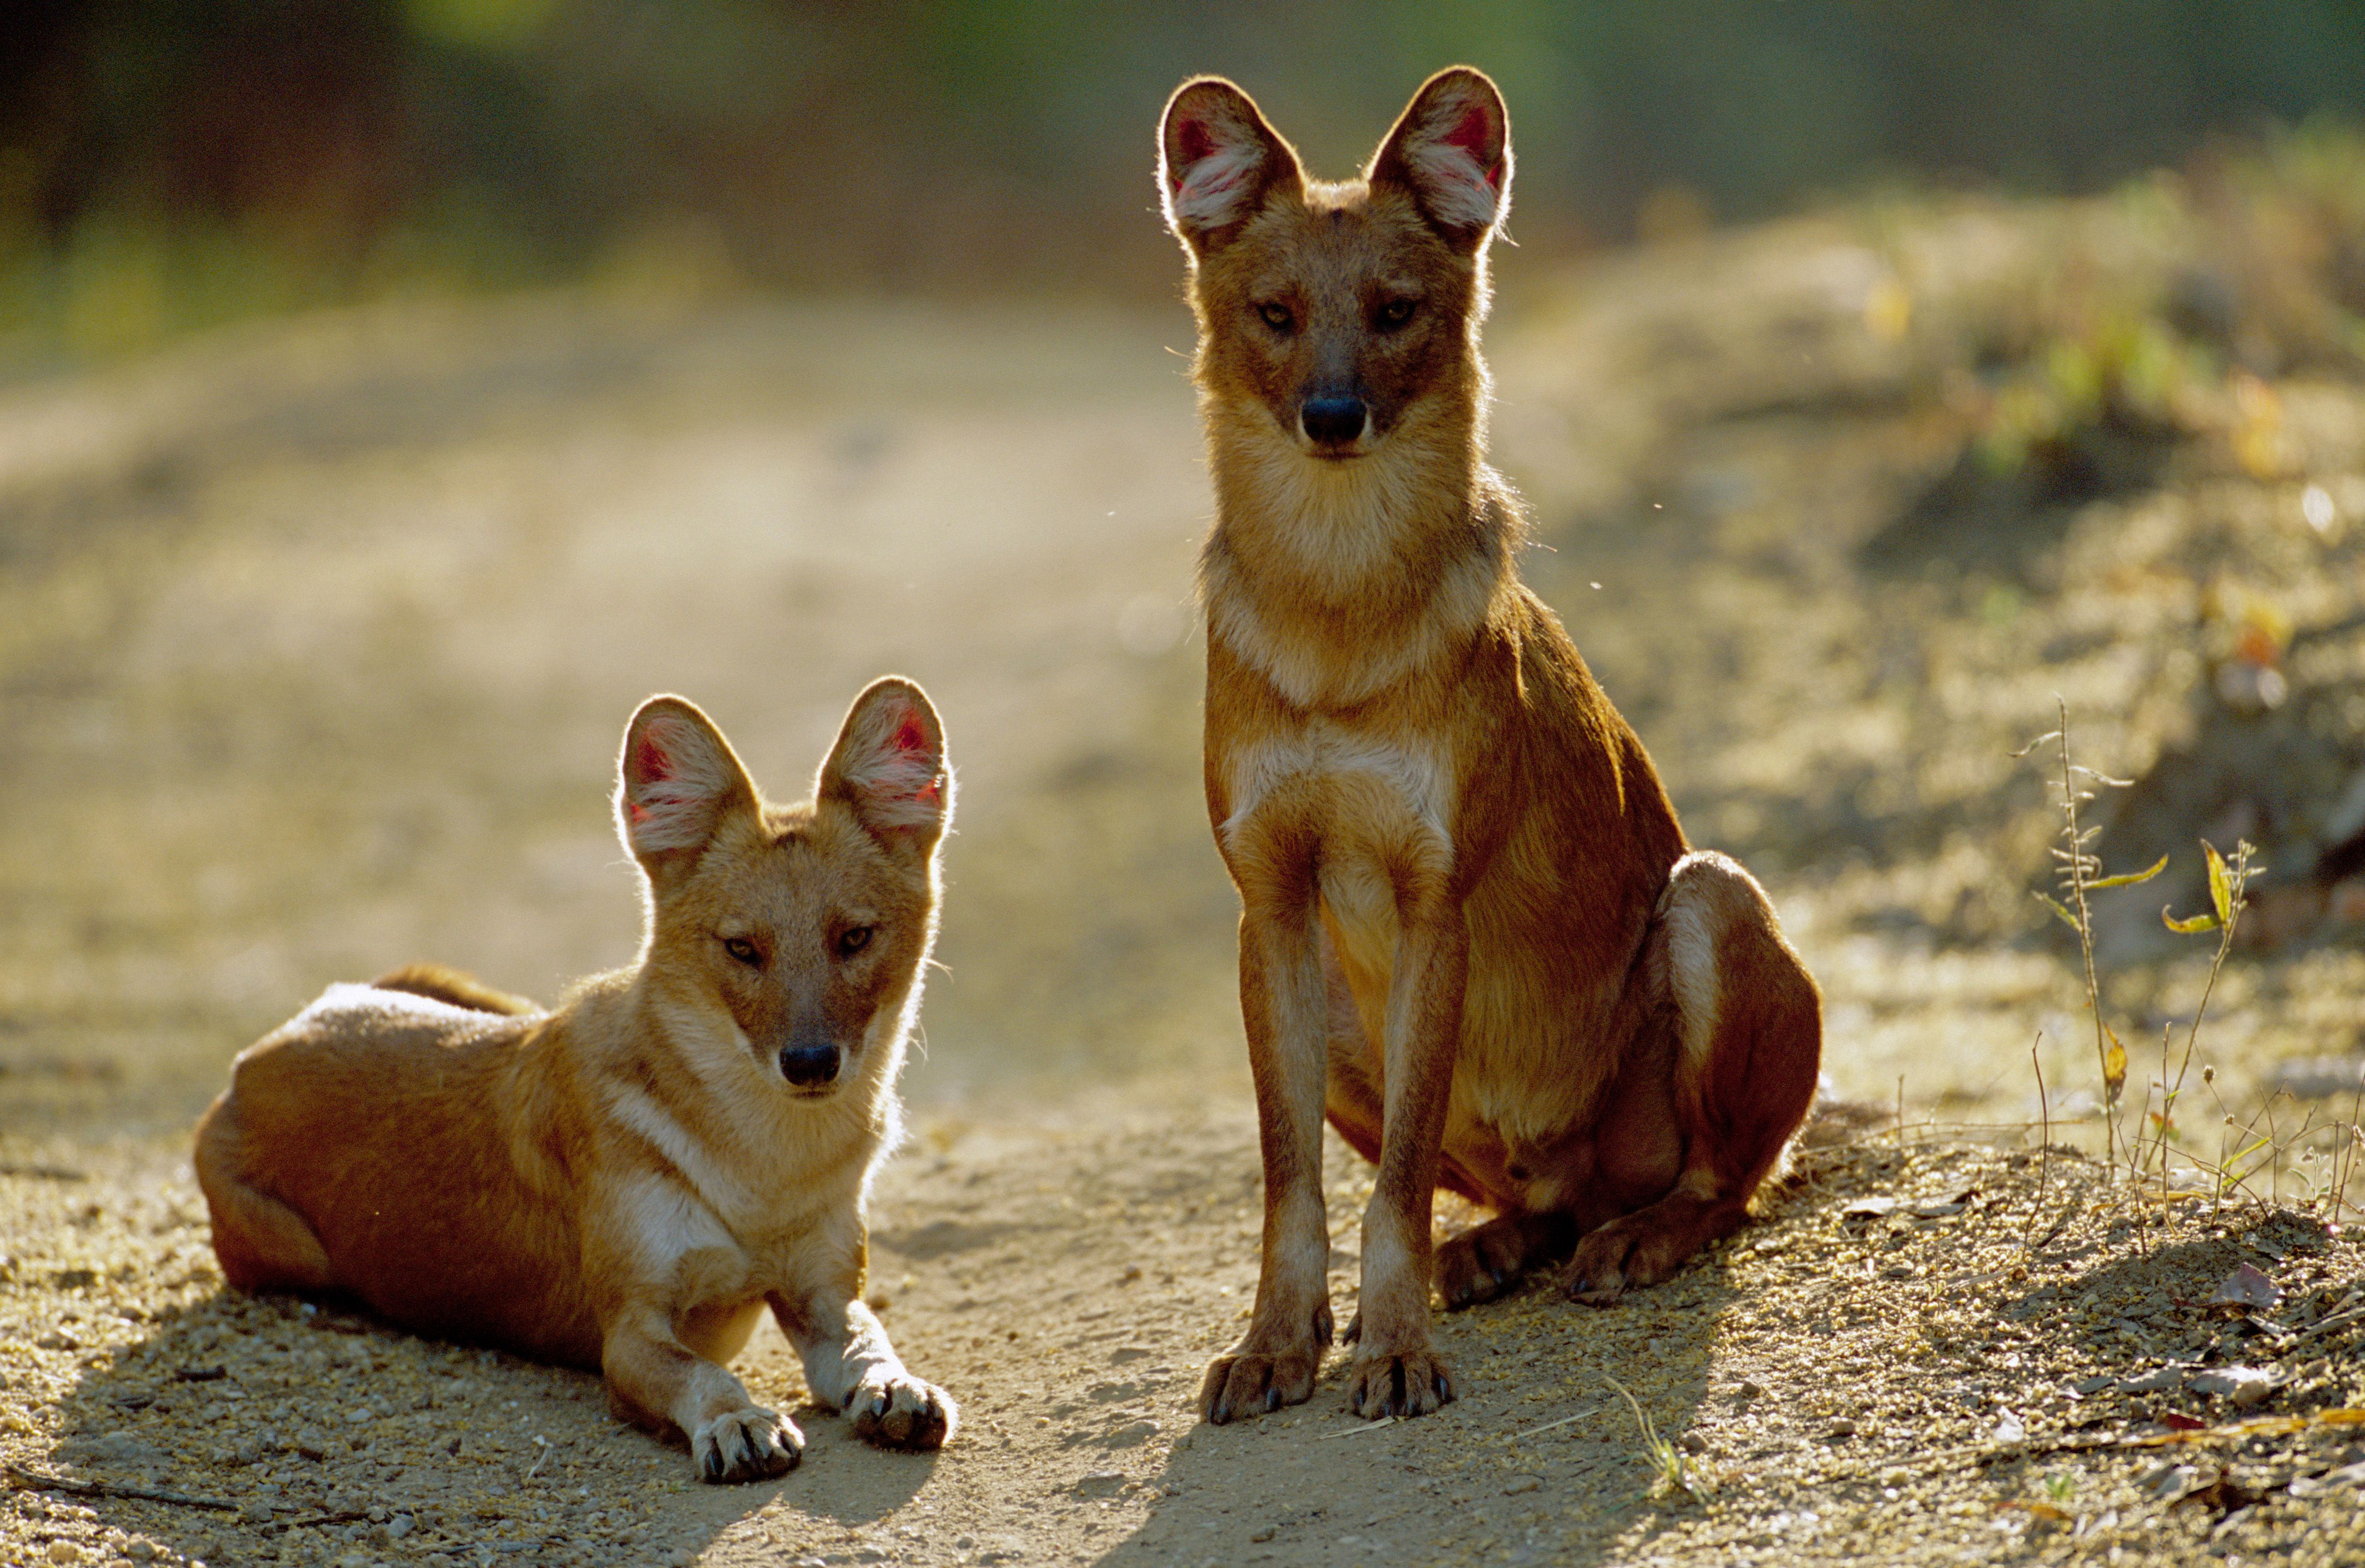 The dhole (Cuon alpinus), is also called the Asiatic wild